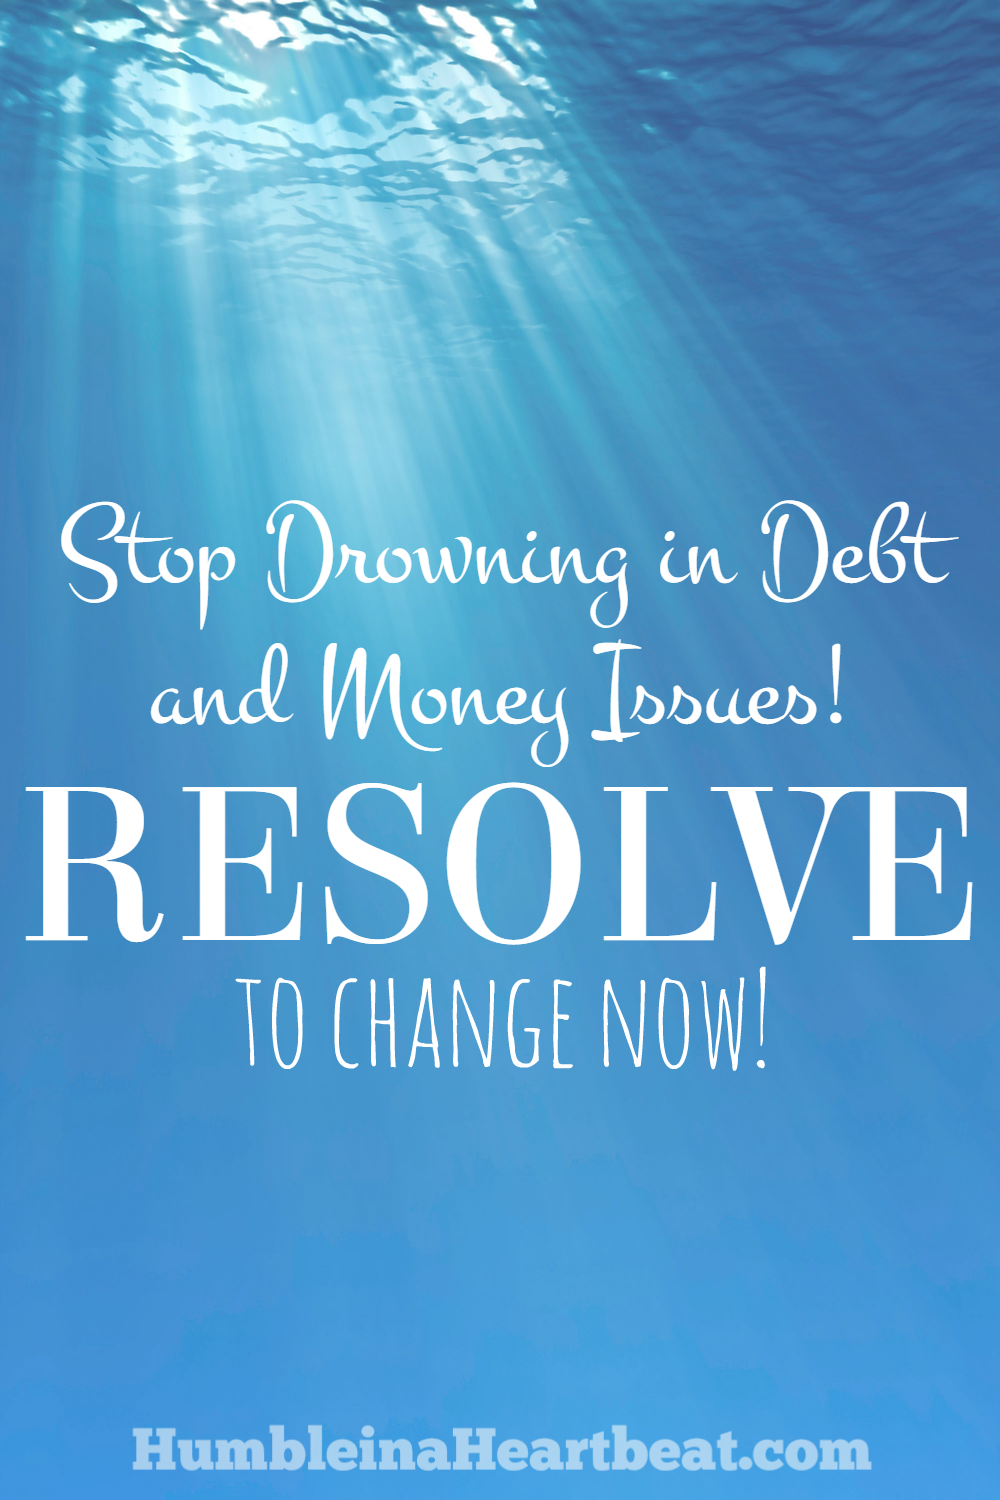 Do you know the one cause of money problems? Not having a budget! A budget is so important if you want total control over your hard-earned money.